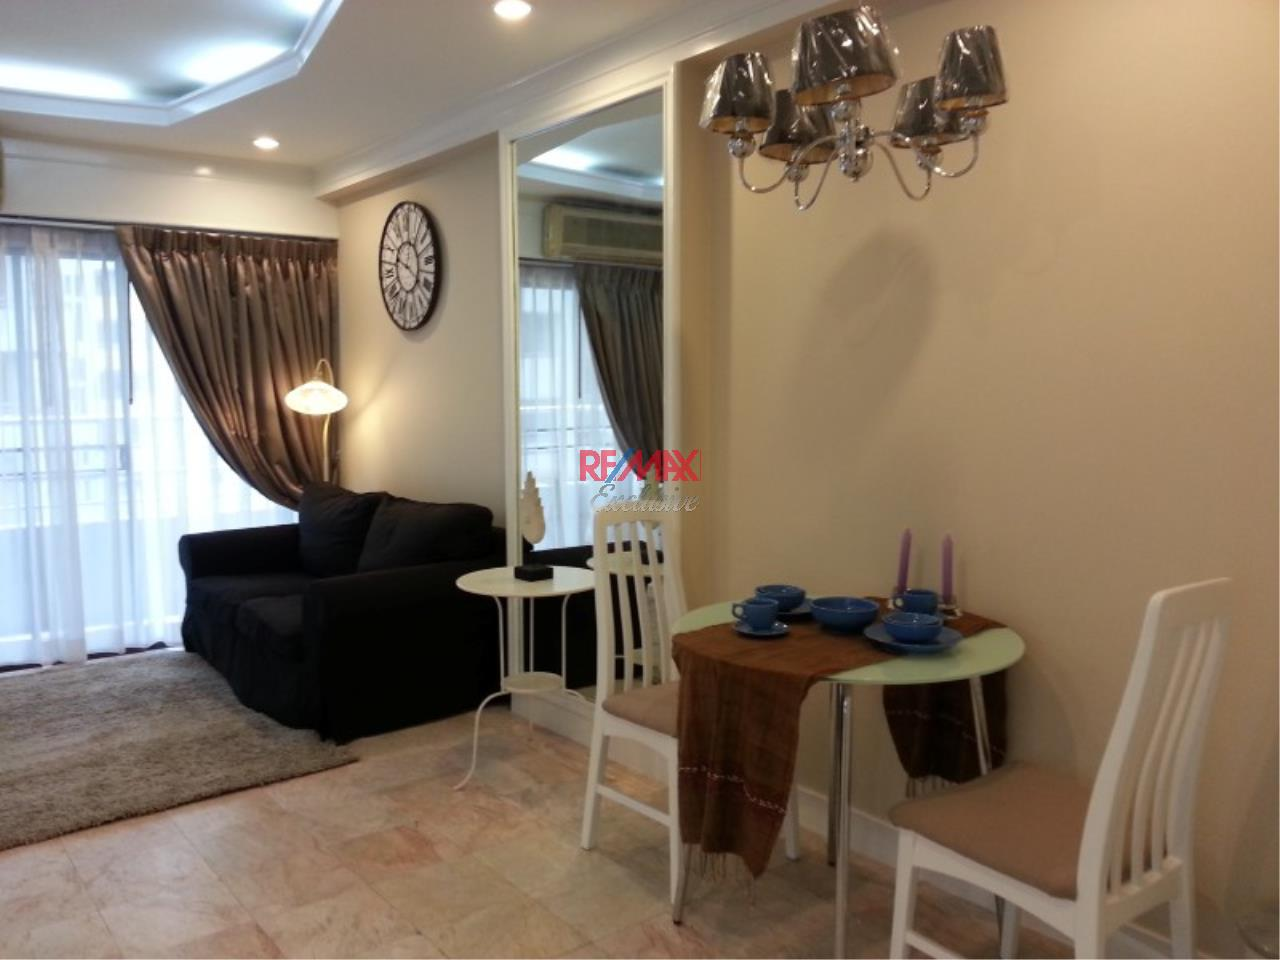 RE/MAX Exclusive Agency's Big 1 Bedroom for sale at Sarajai Mansion 4800000 12